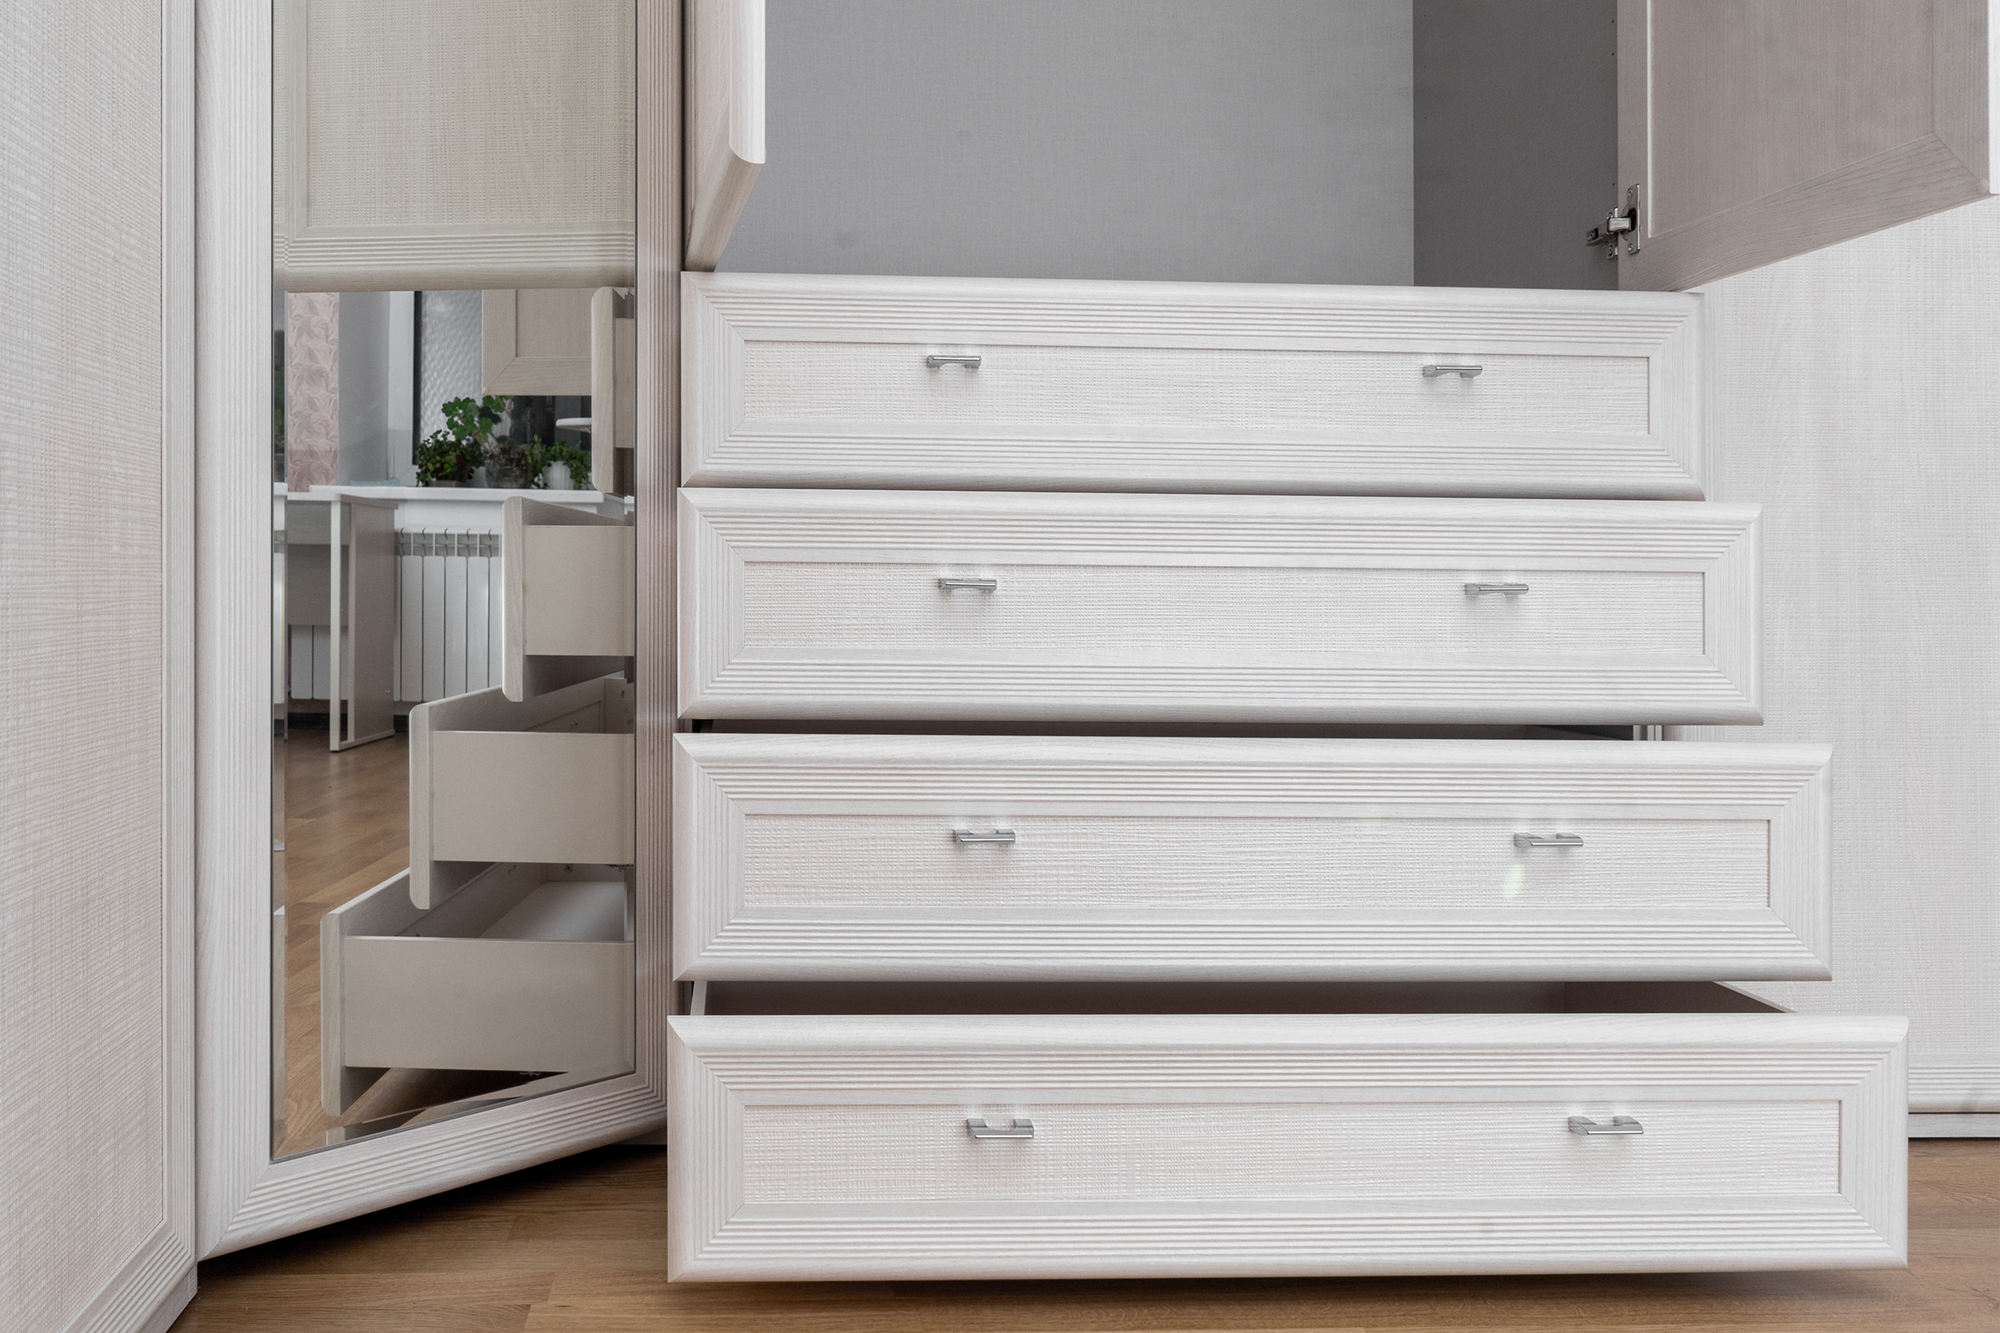 Keep Drawers Empty for Your Move